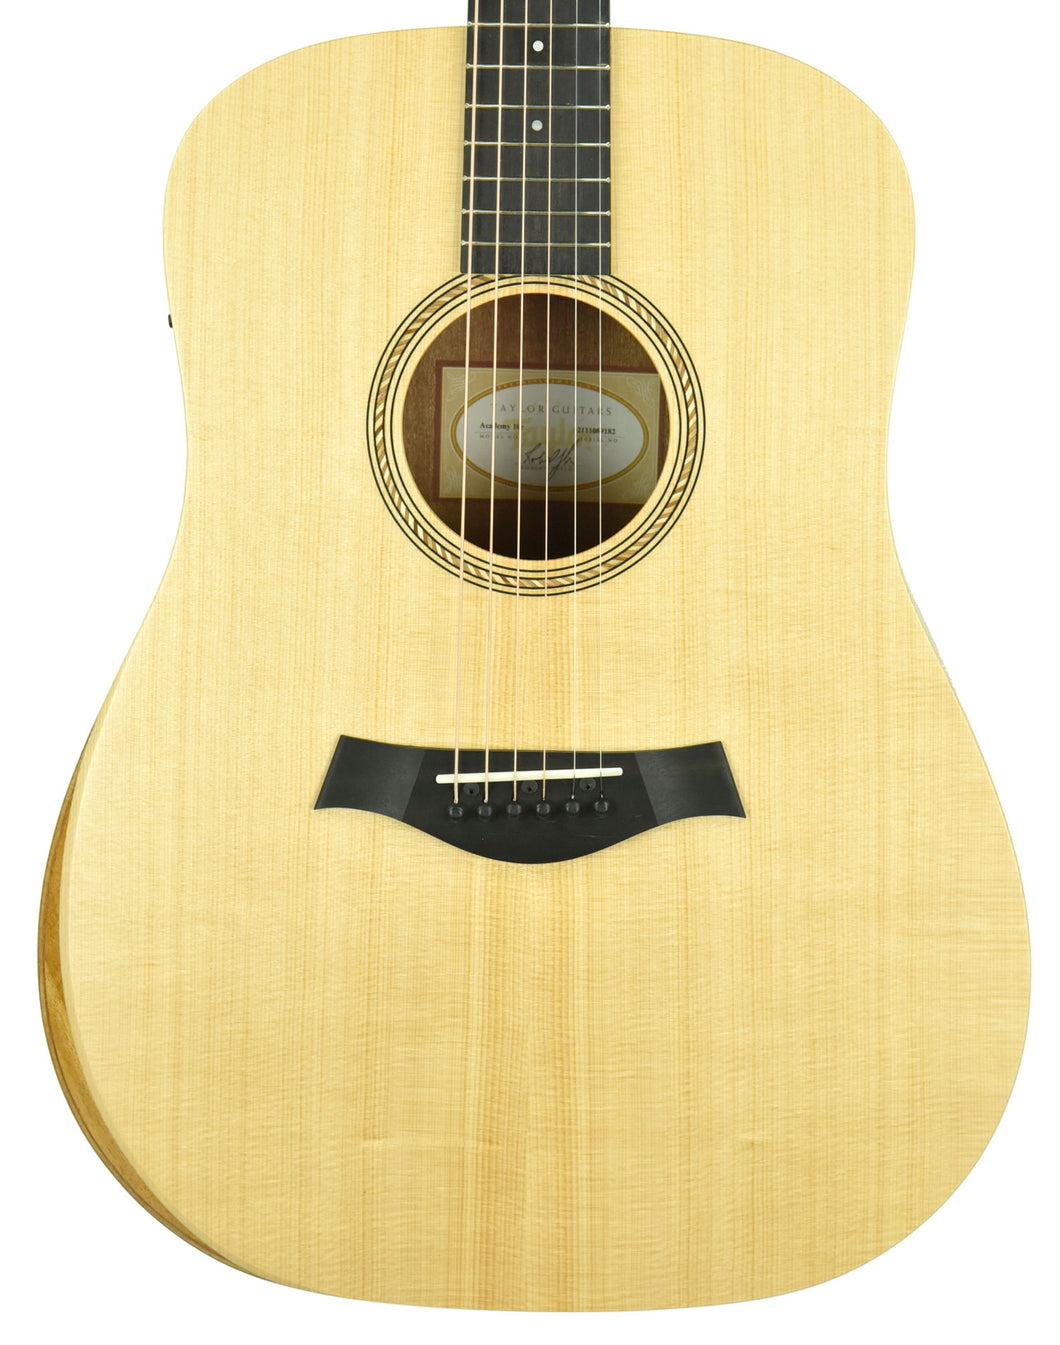 Taylor Academy 10e Acoustic Guitar in Natural 2201211001 - The Music Gallery